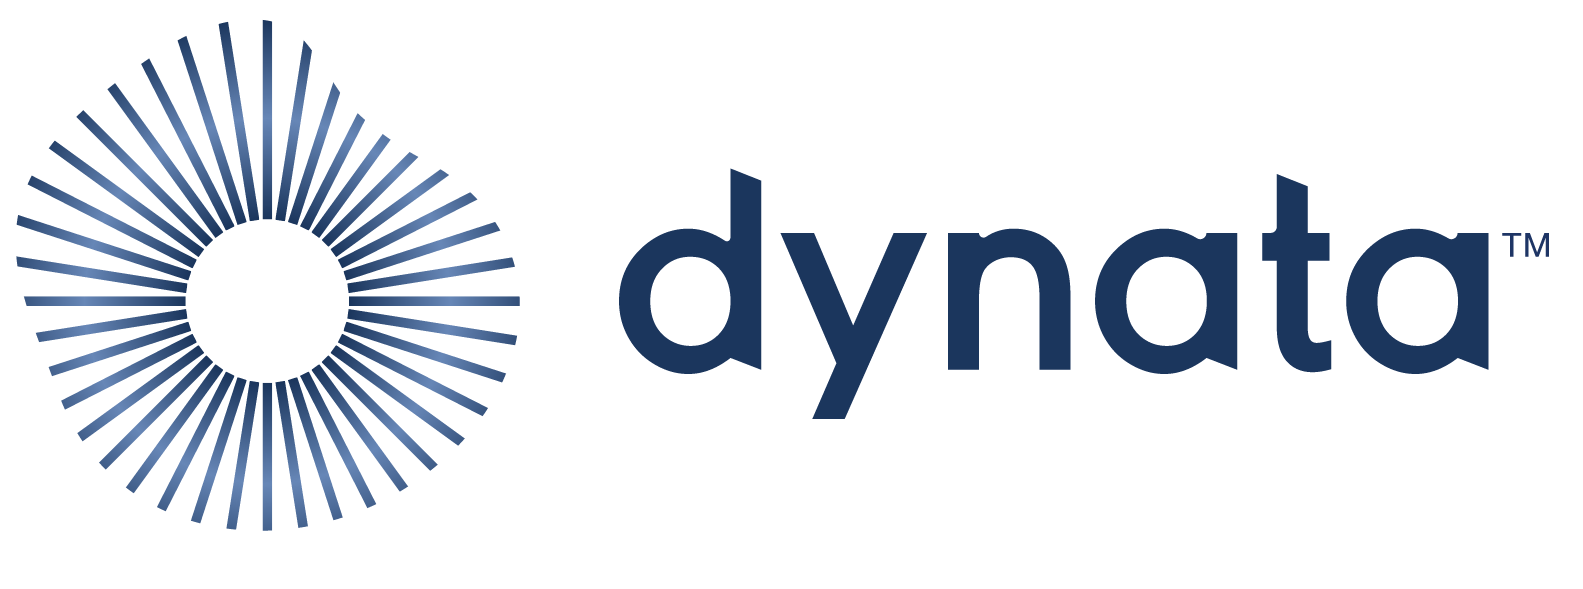 Dynata Help Center home page